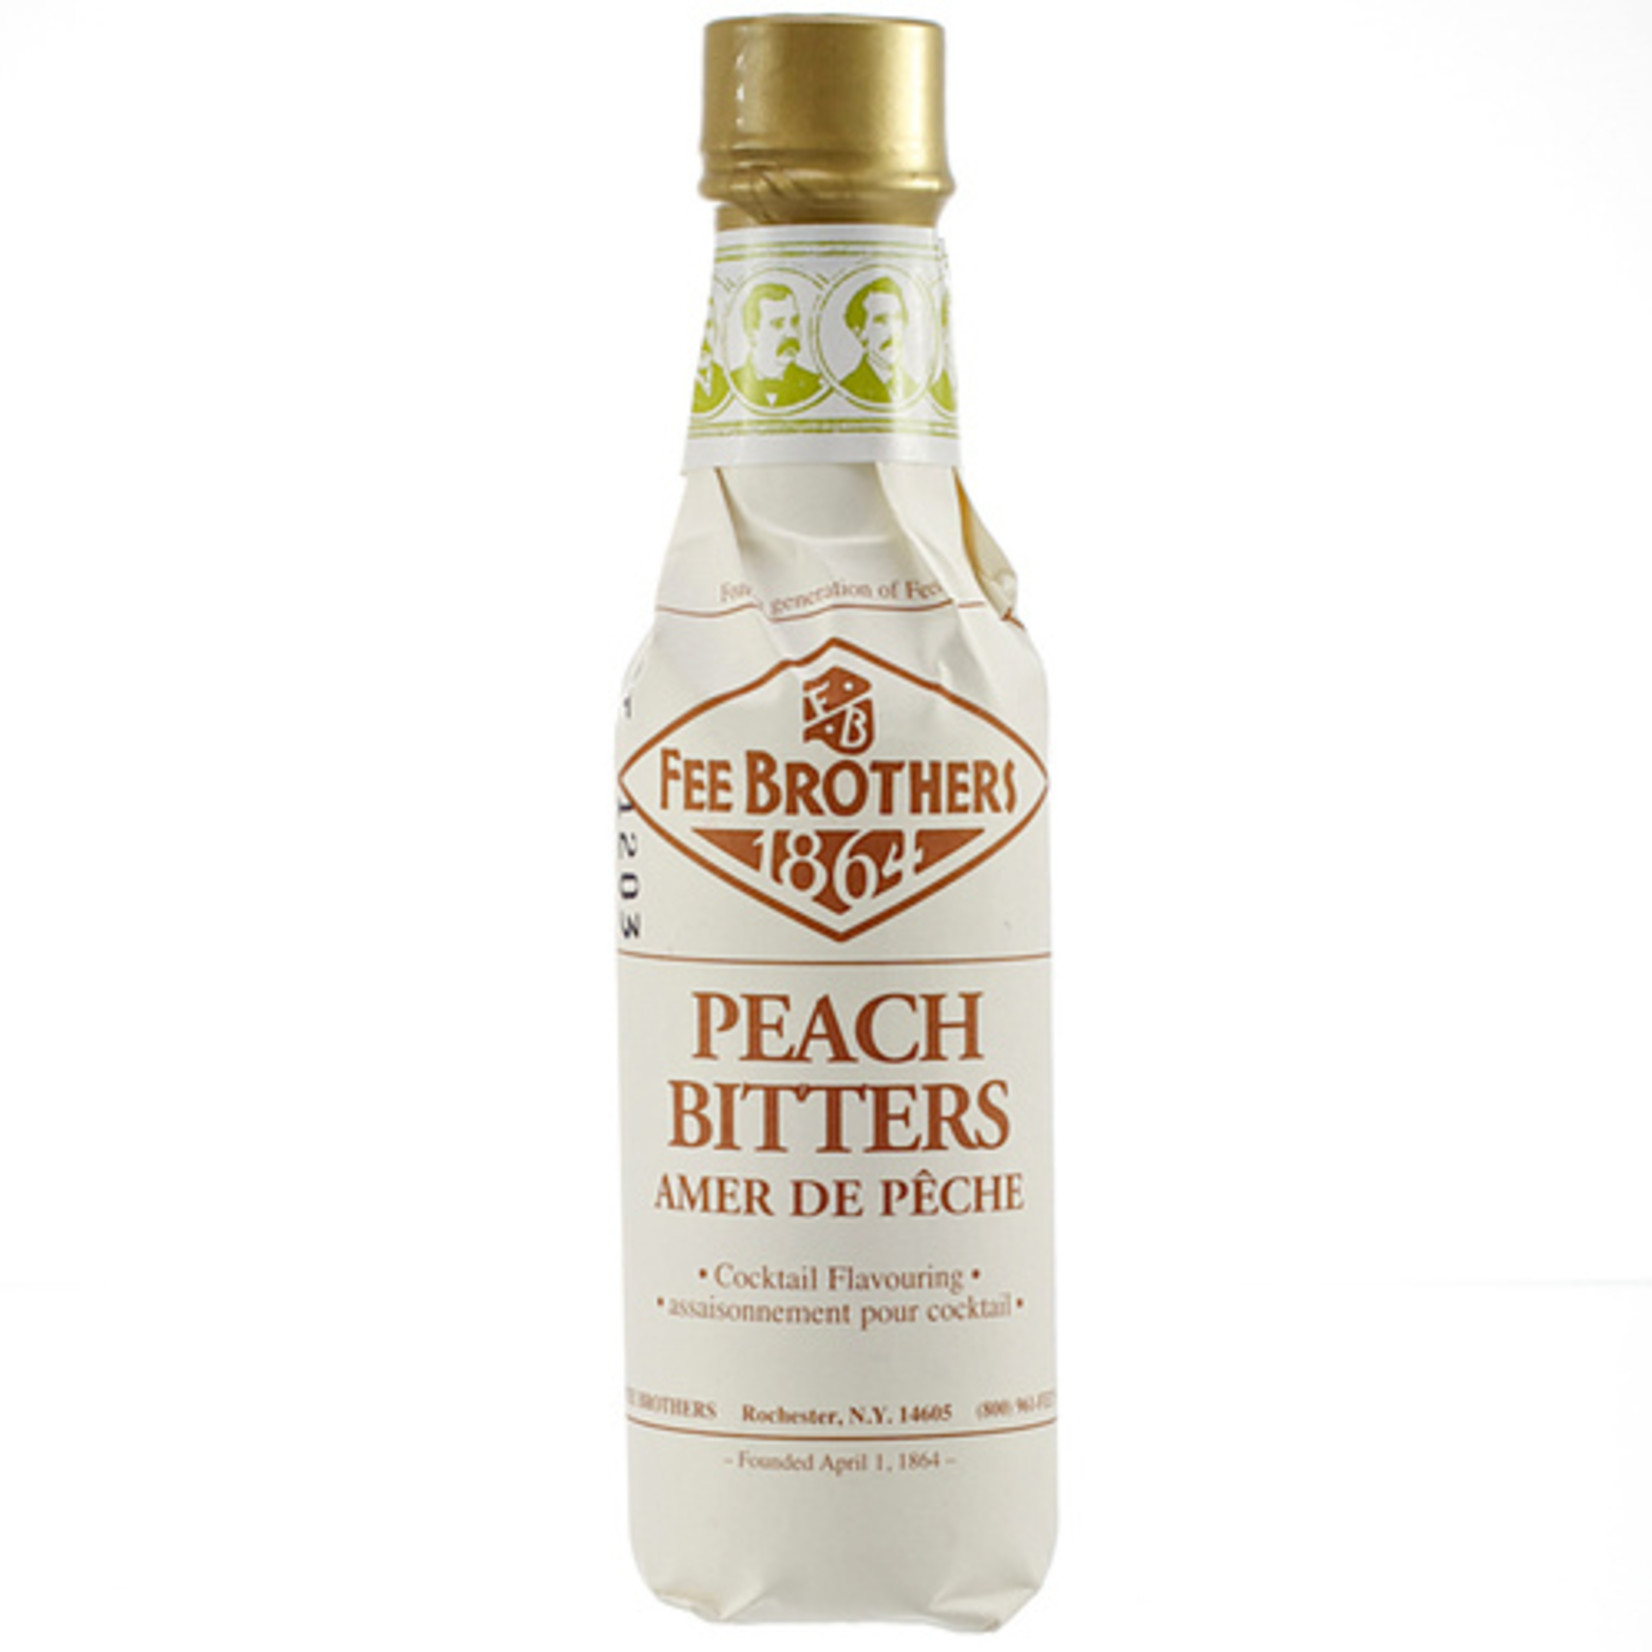 Fee Brothers Fee Brothers Bitters Peach